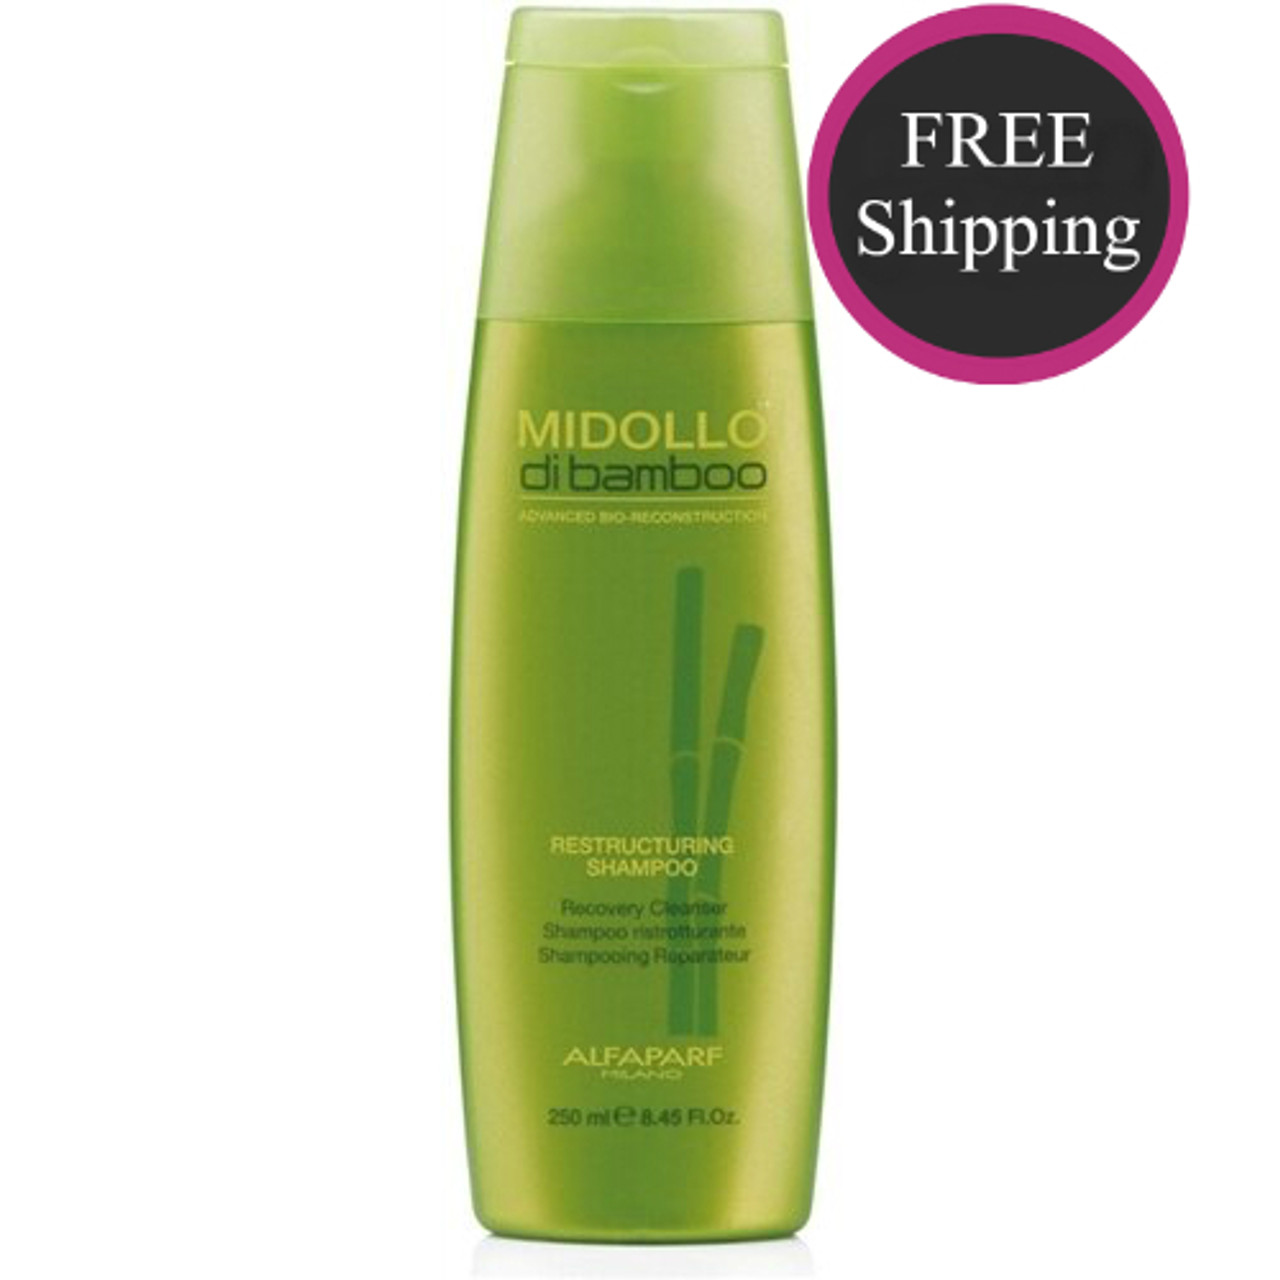 Alfaparf Bamboo Restructuring Shampoo 8.5 oz: Free shipping!